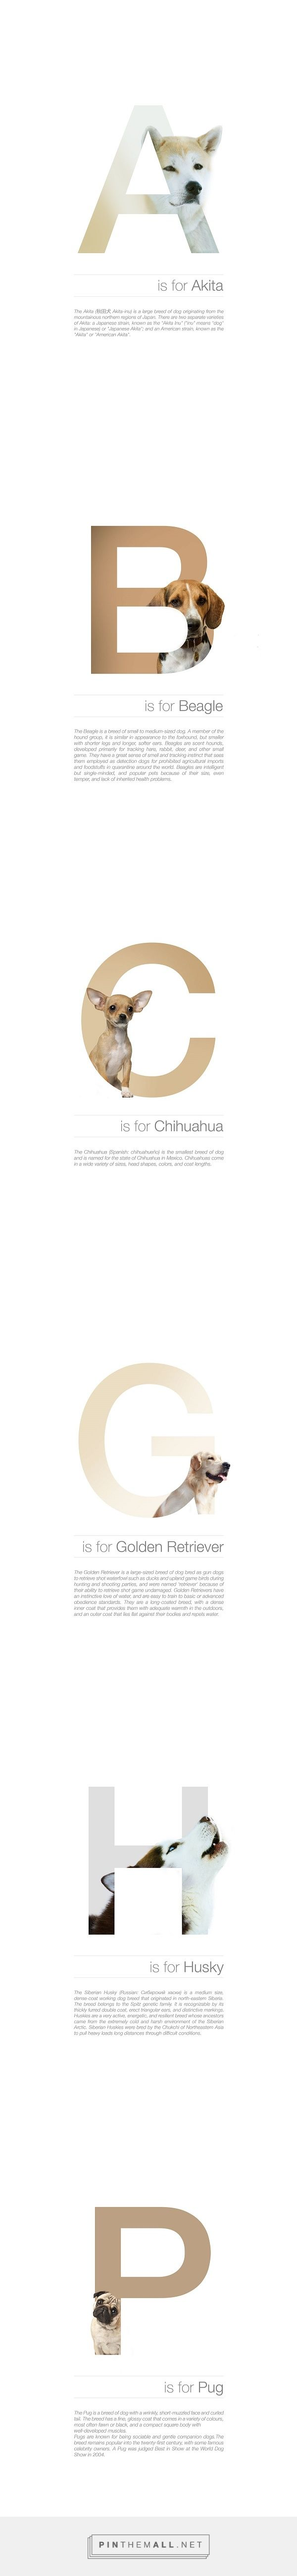 Designer Matches Letters Of The Alphabet With Different Dog Breeds…